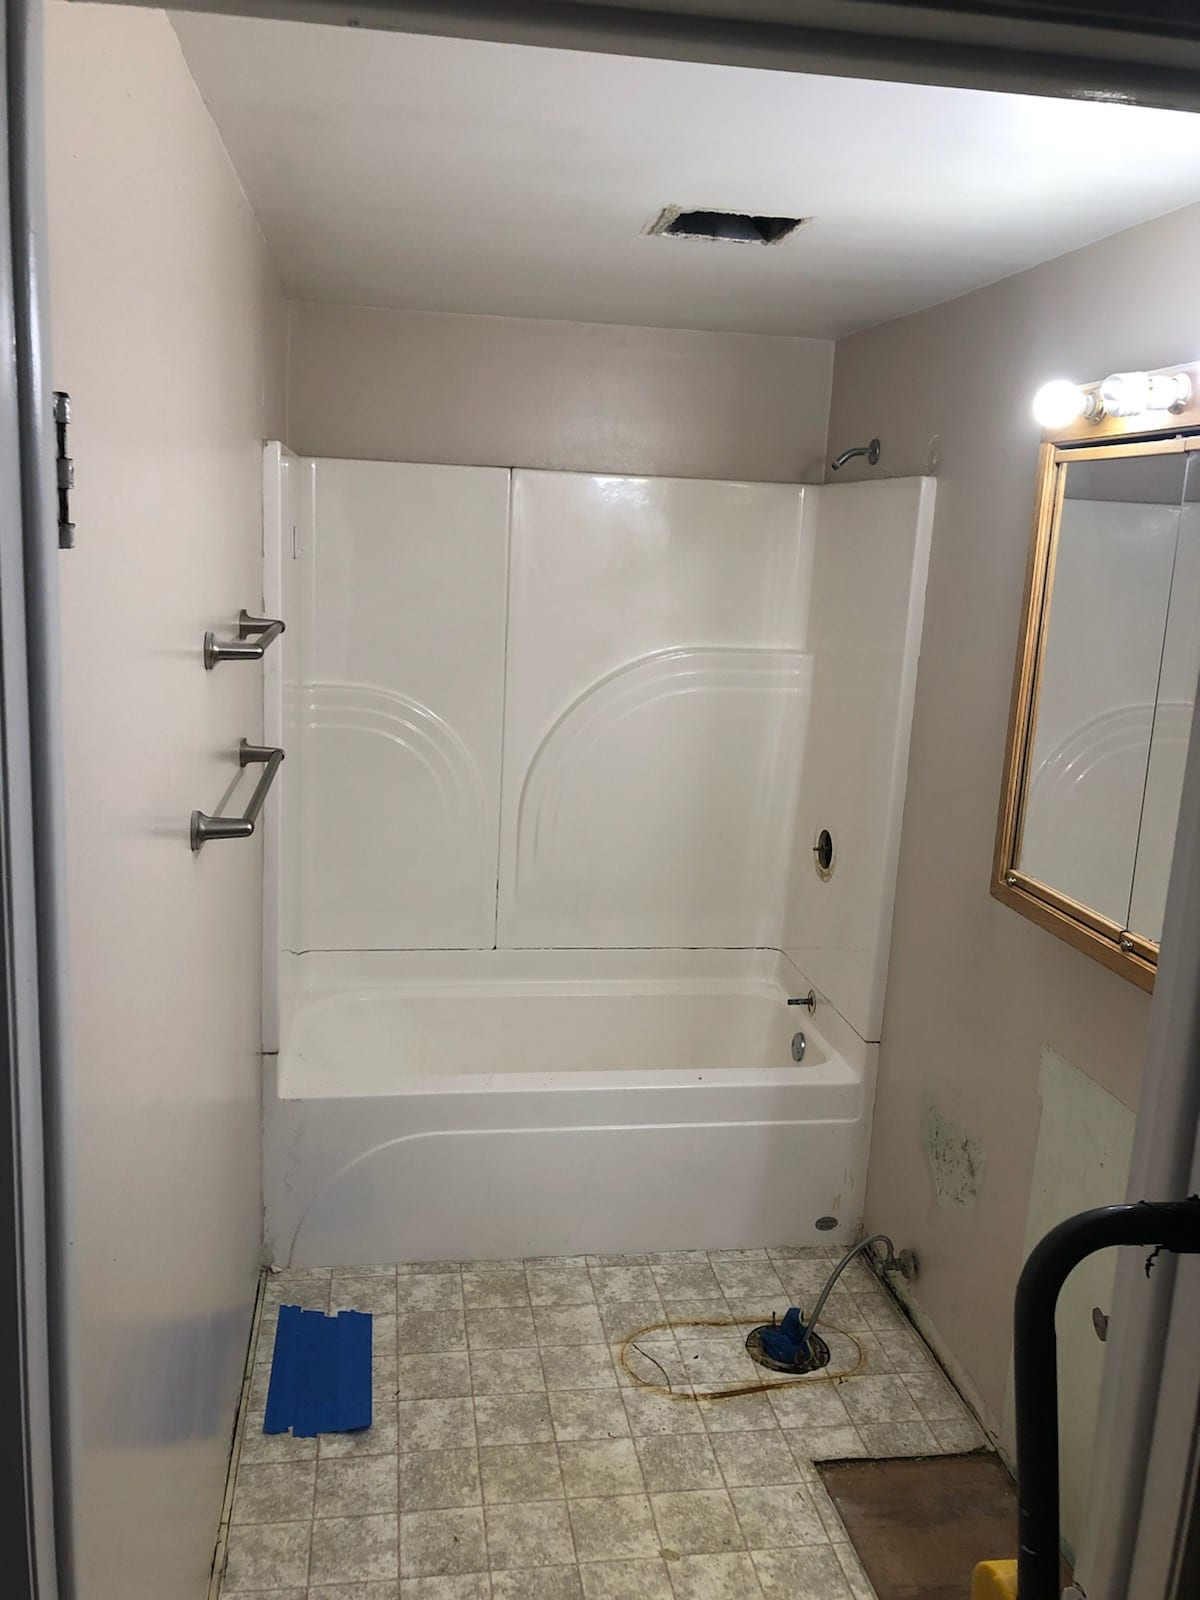 replace a fiberglass tub with tile